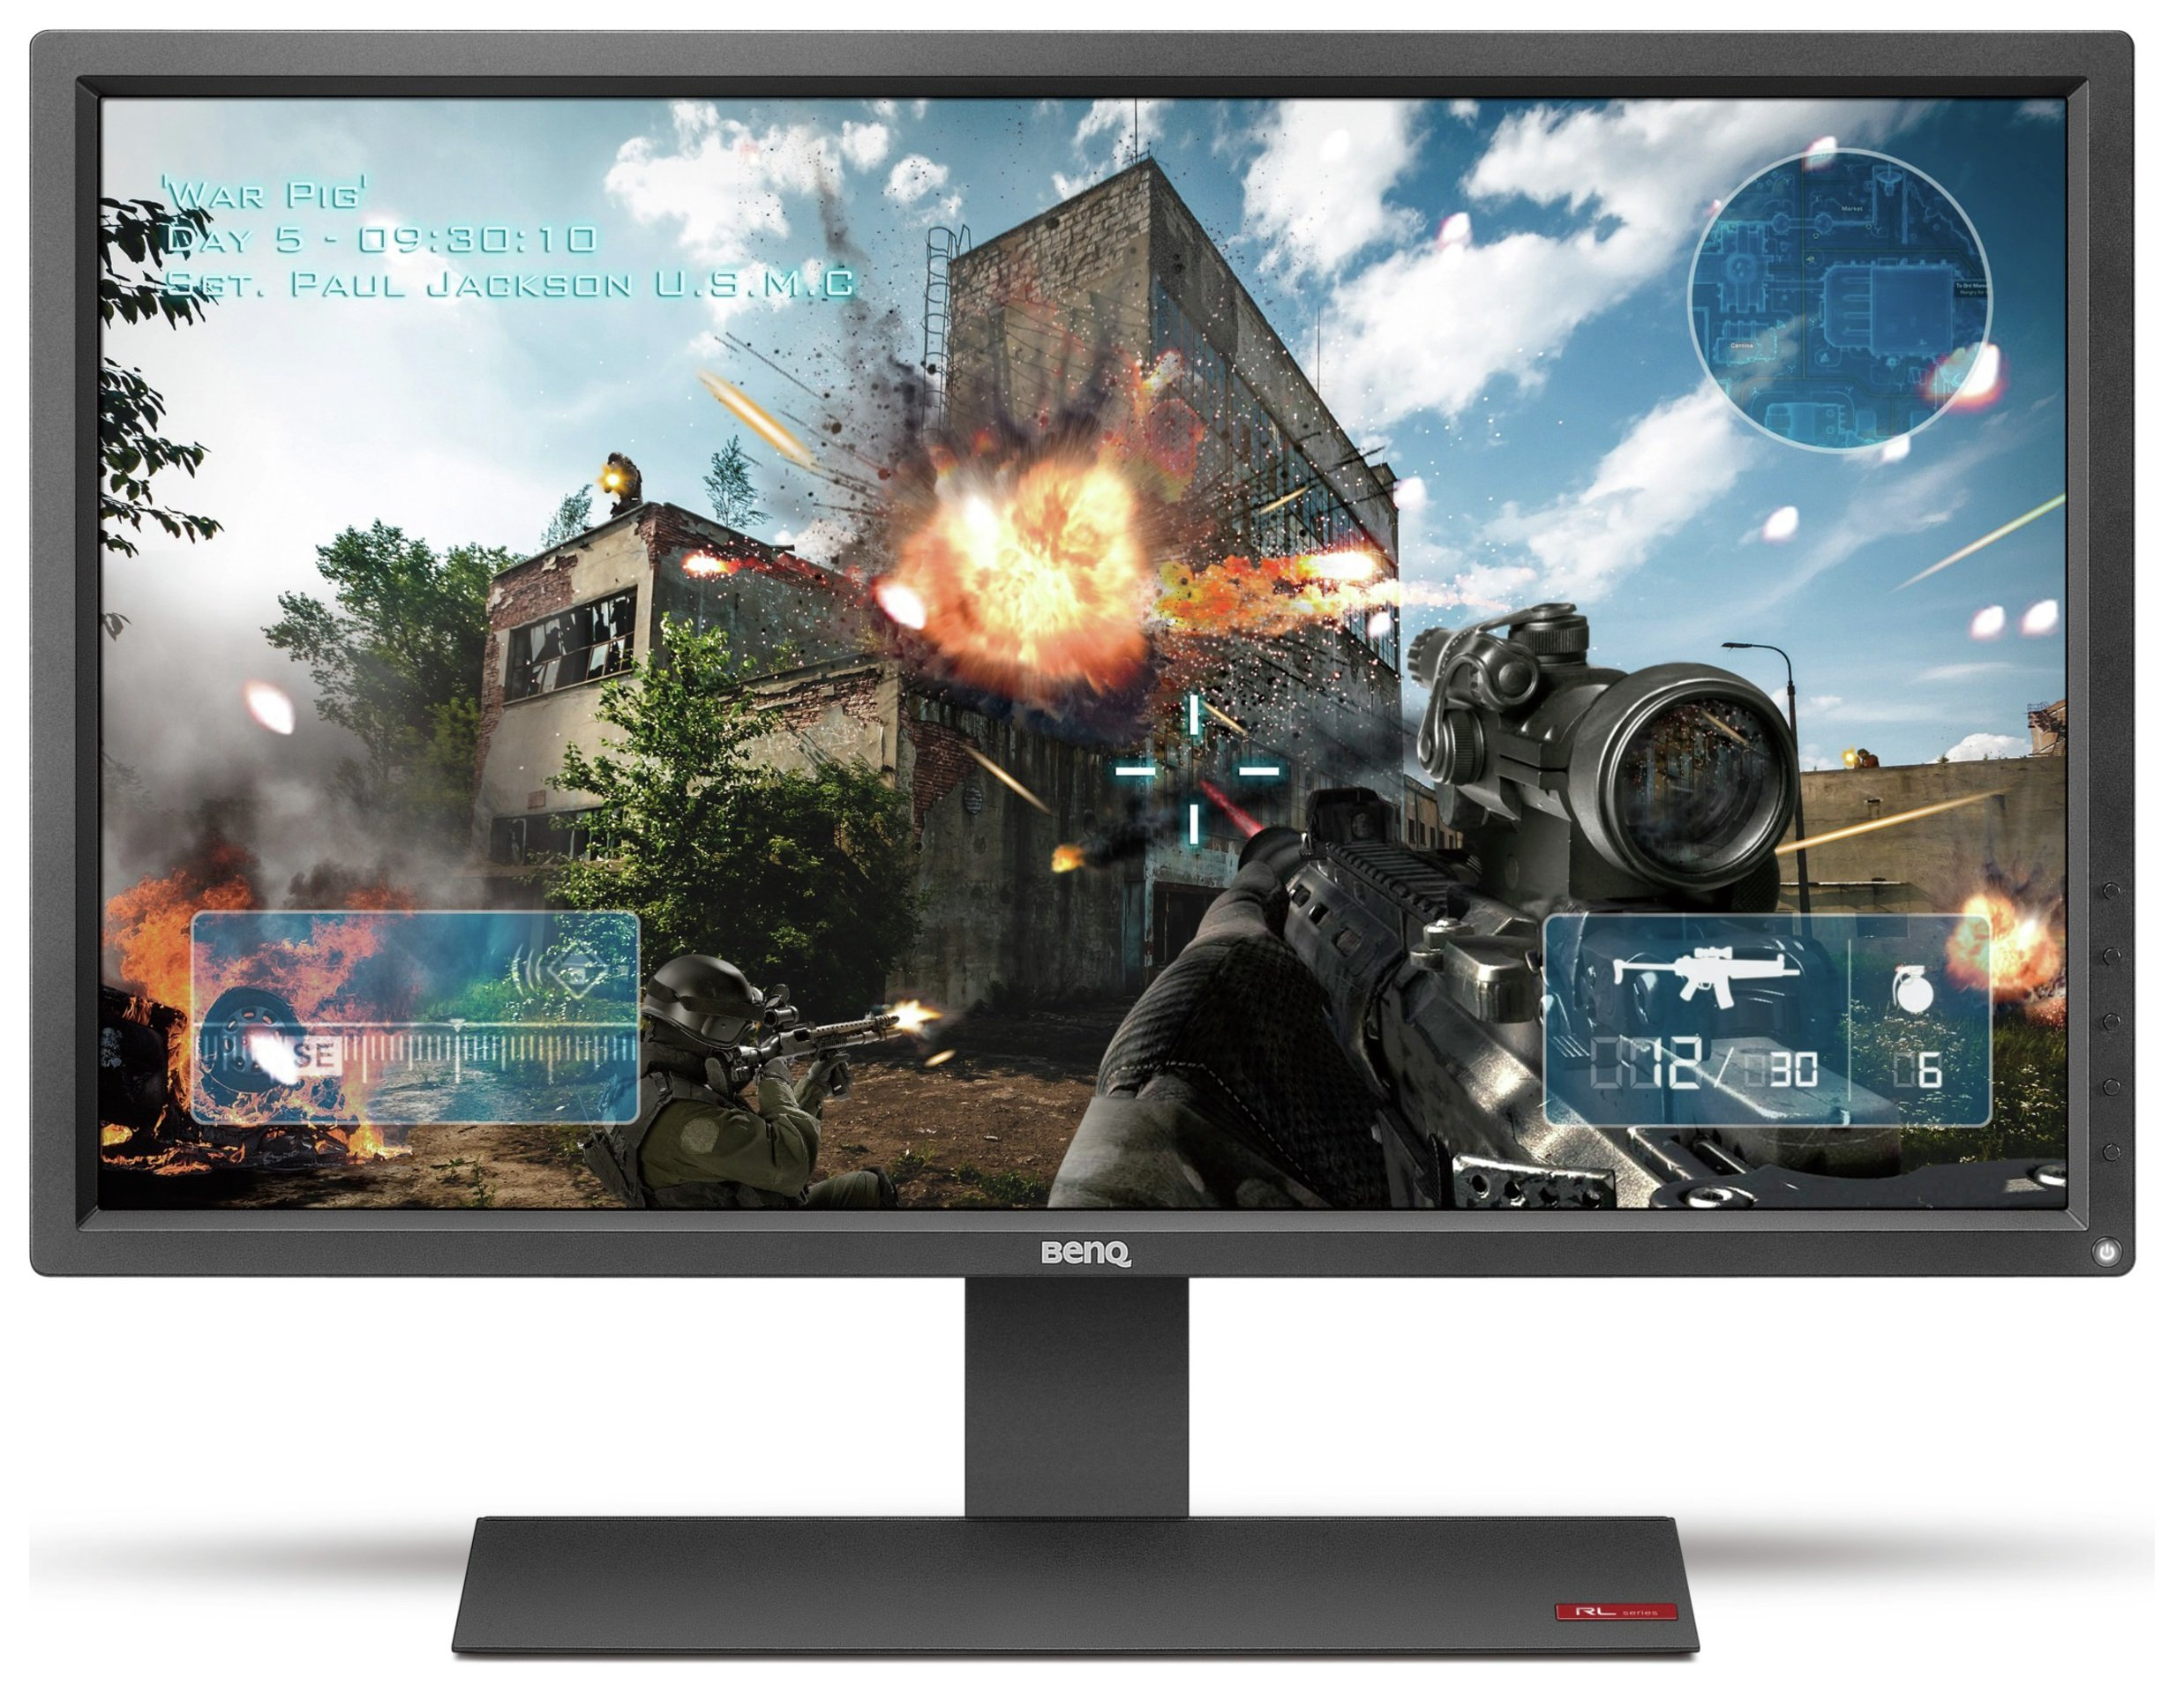 Image of BenQ Zowie RL2755 27 Inch Gaming PC Monitor.